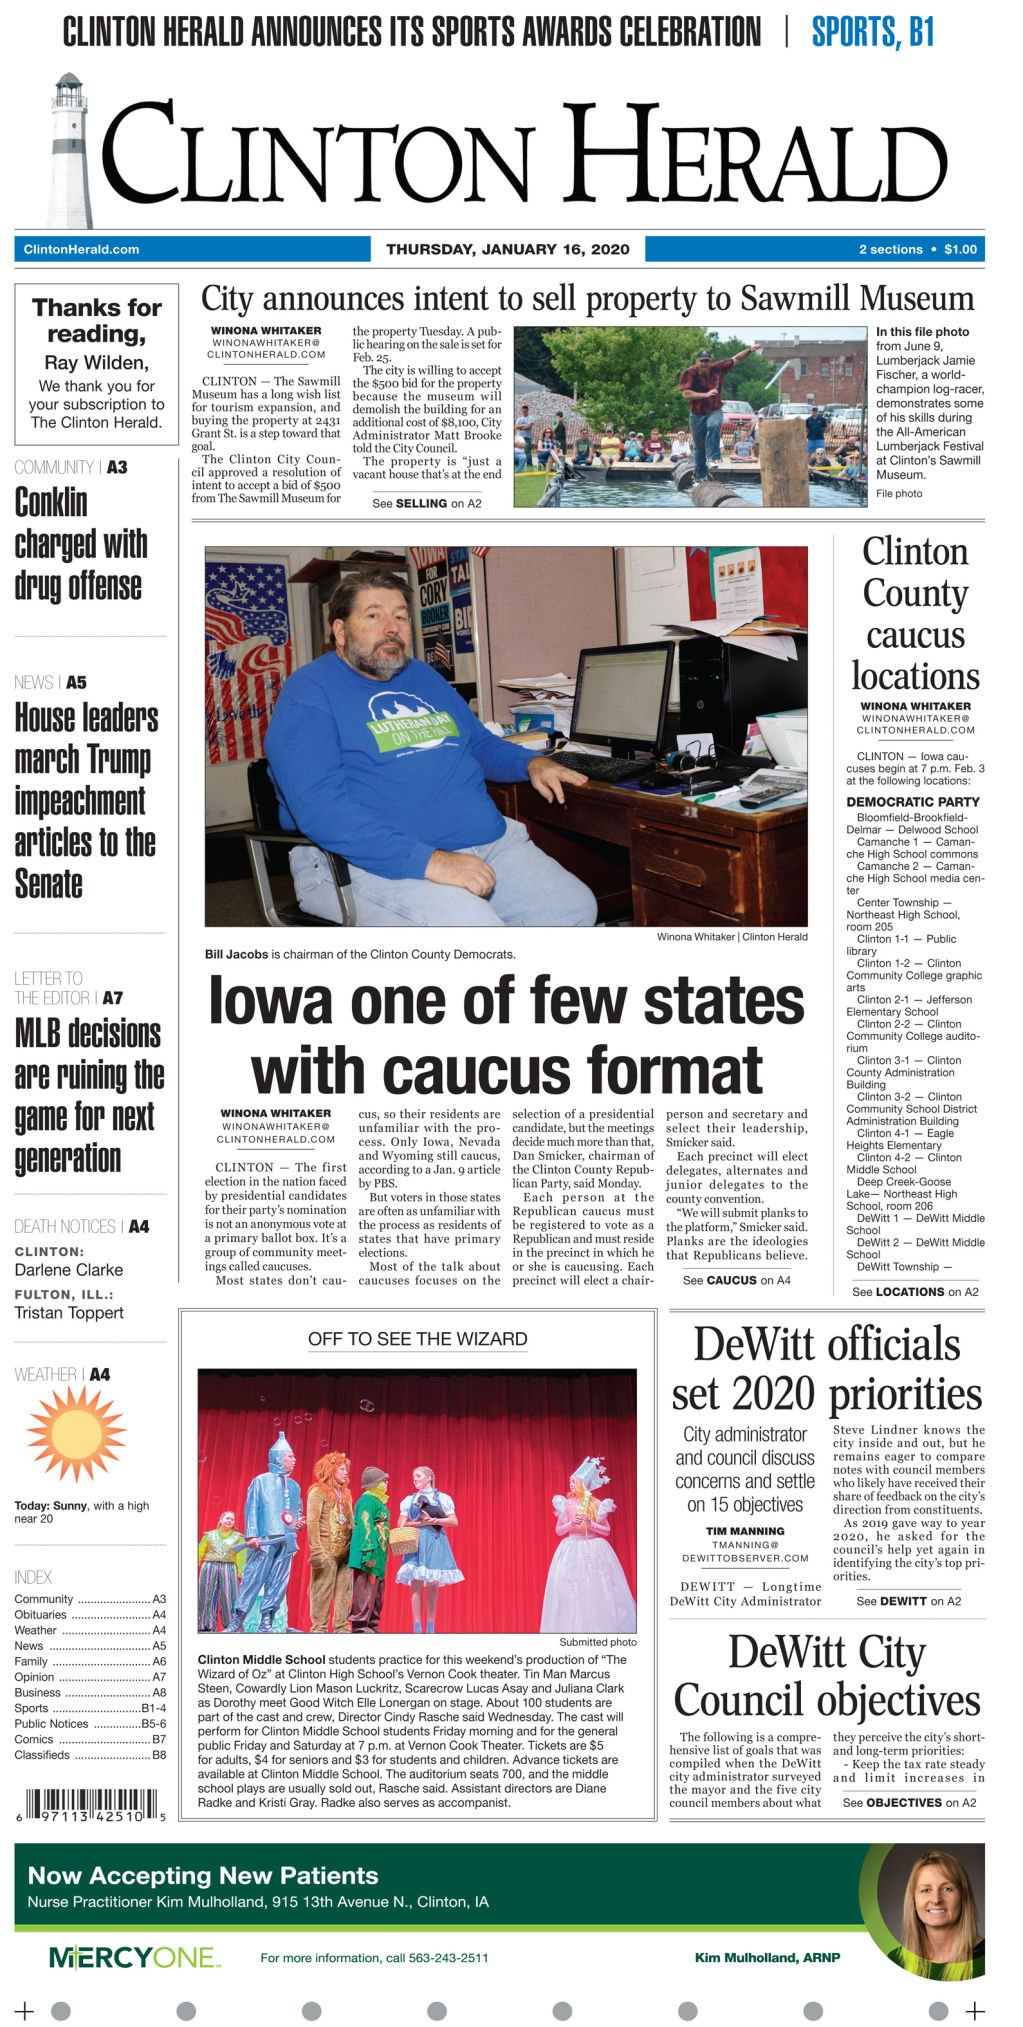 Jan. 16, 2020 Front page